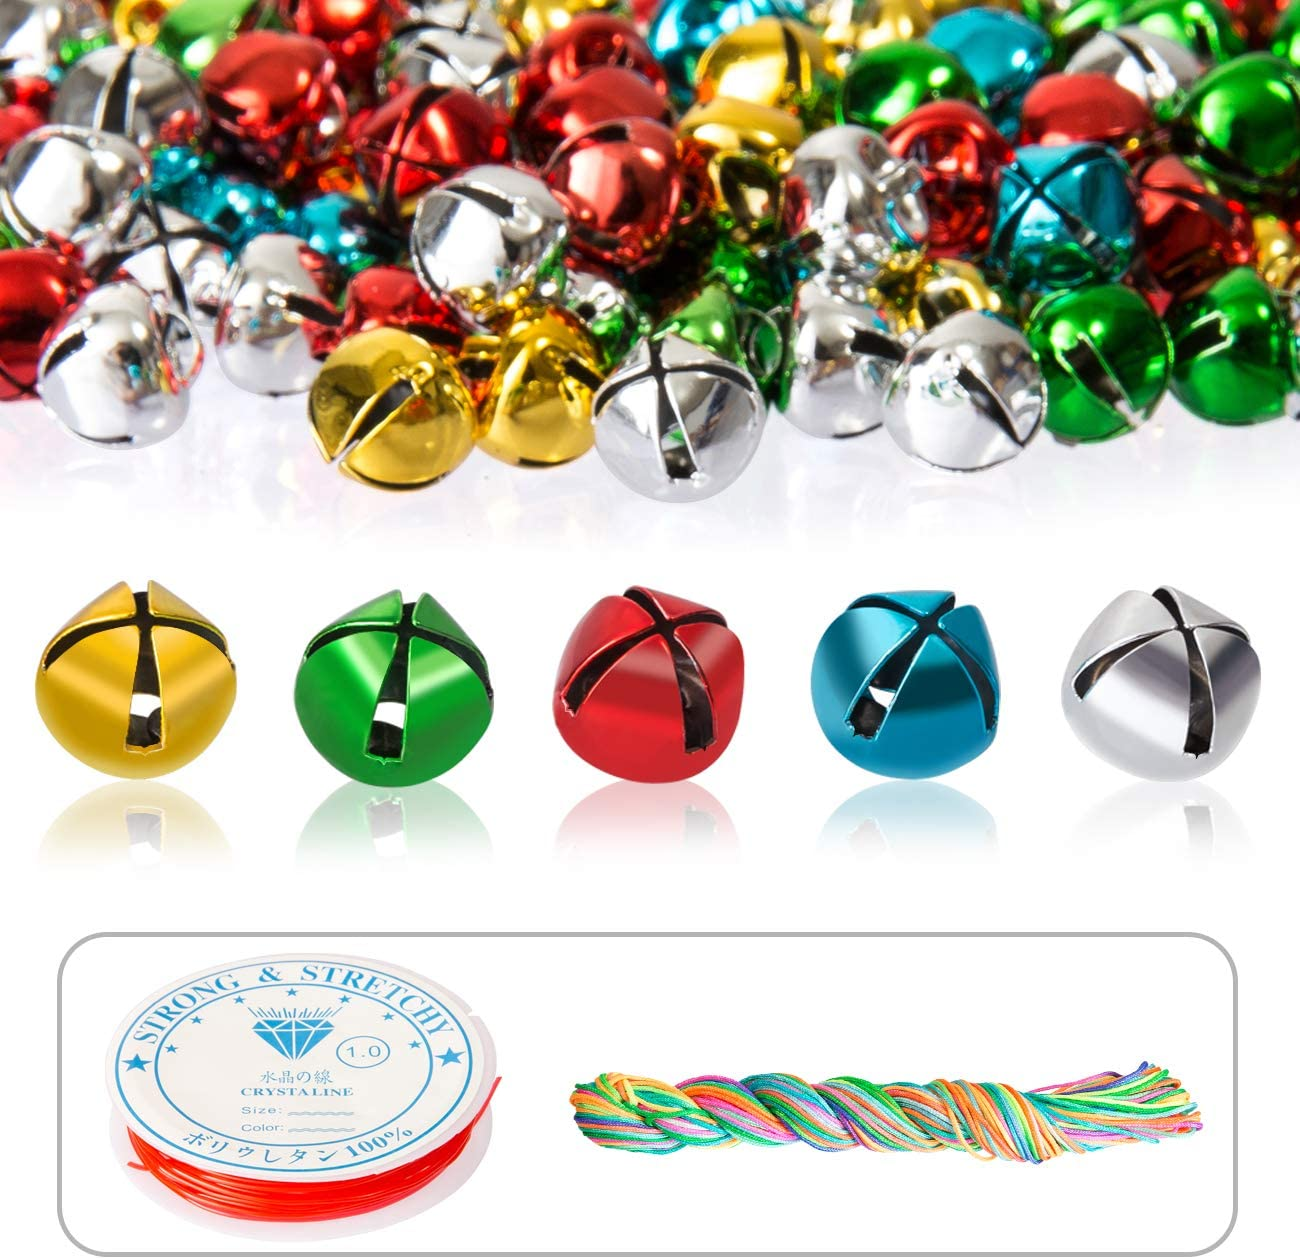 Naler 300 Pieces Mini Jingle Bells Multicolored Craft Small Bells with Cord and Elastic String for DIY Jewelry Making Christmas Party Festival Decorations 0.4 Inch